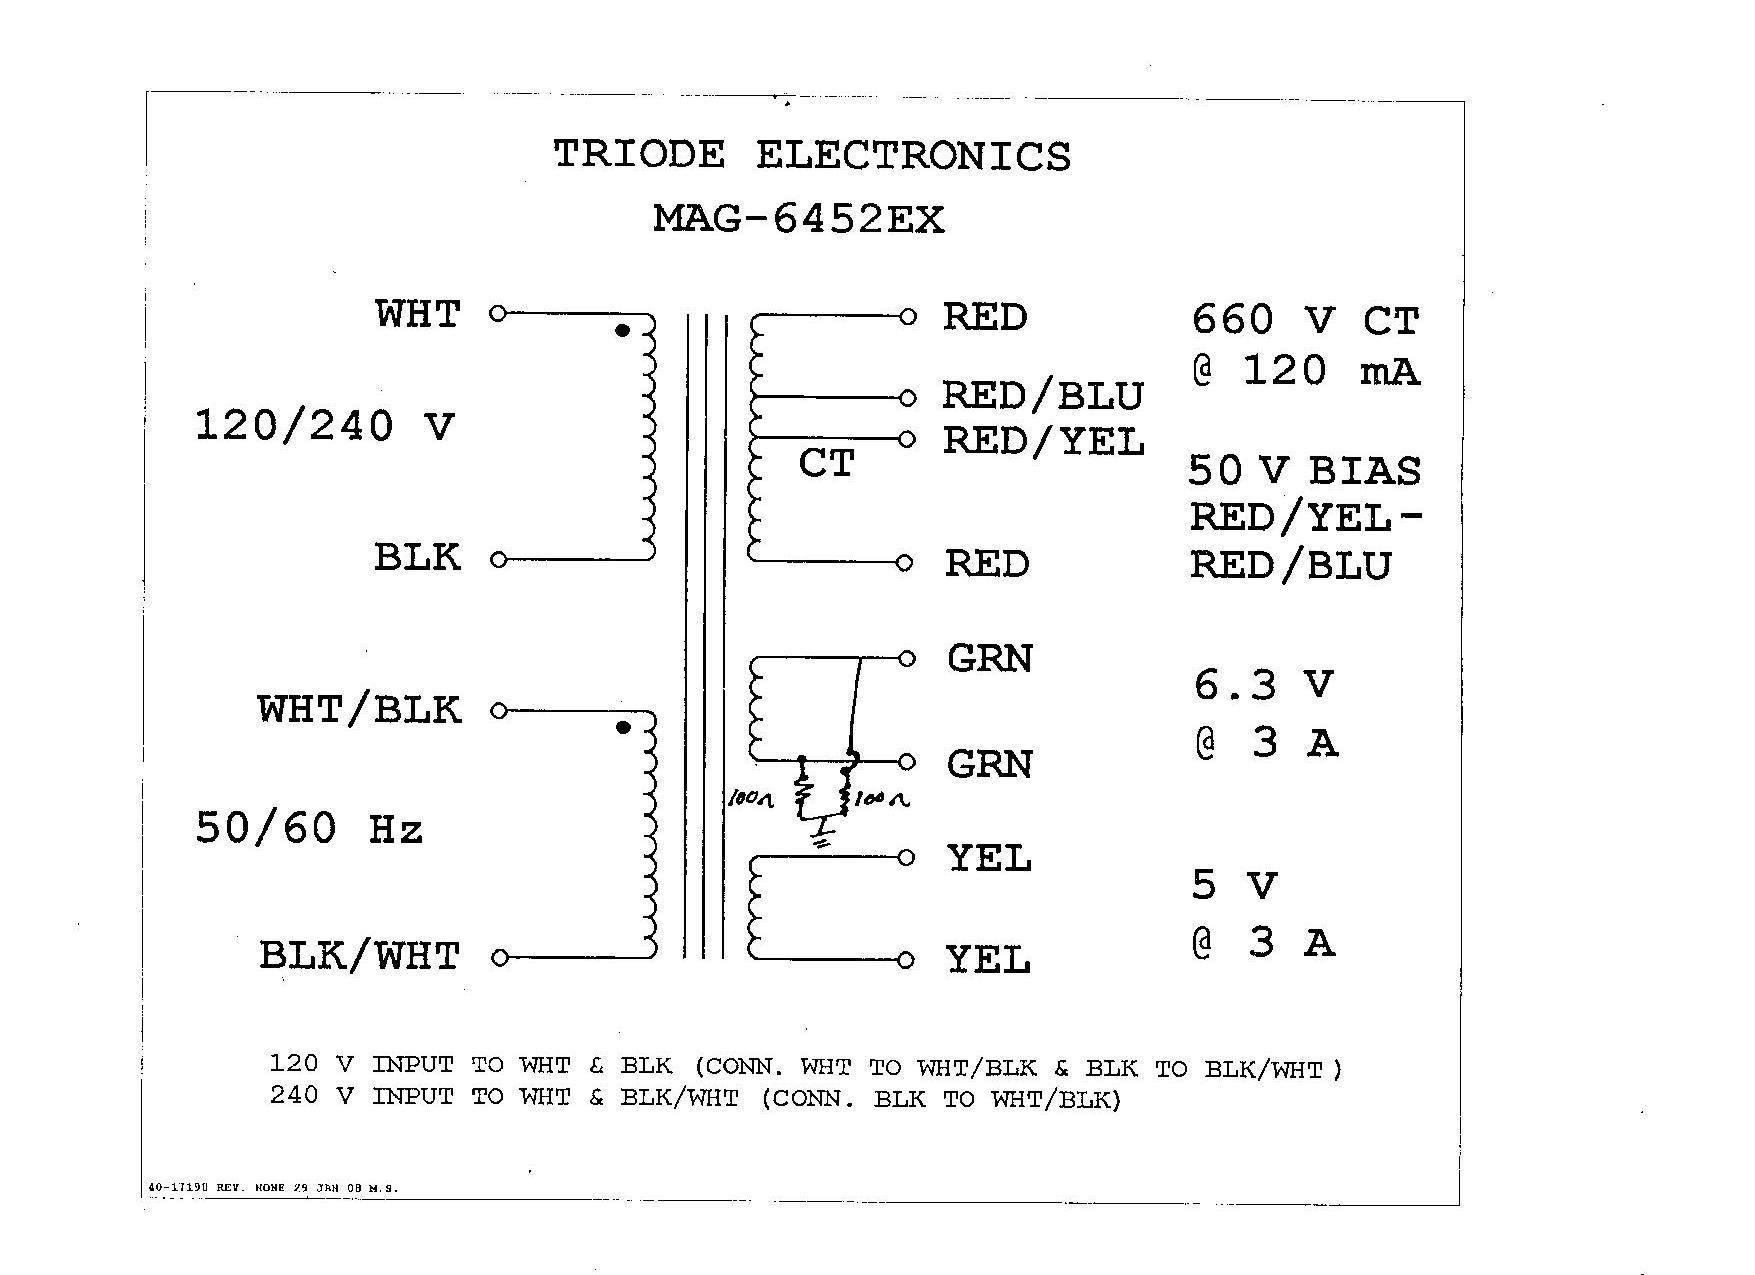 transformers wiring diagrams 2002 nissan sentra gxe radio diagram 480 208 step down transformer great installation of 208v electrical rh 23 phd medical faculty hamburg de 112 5 kva